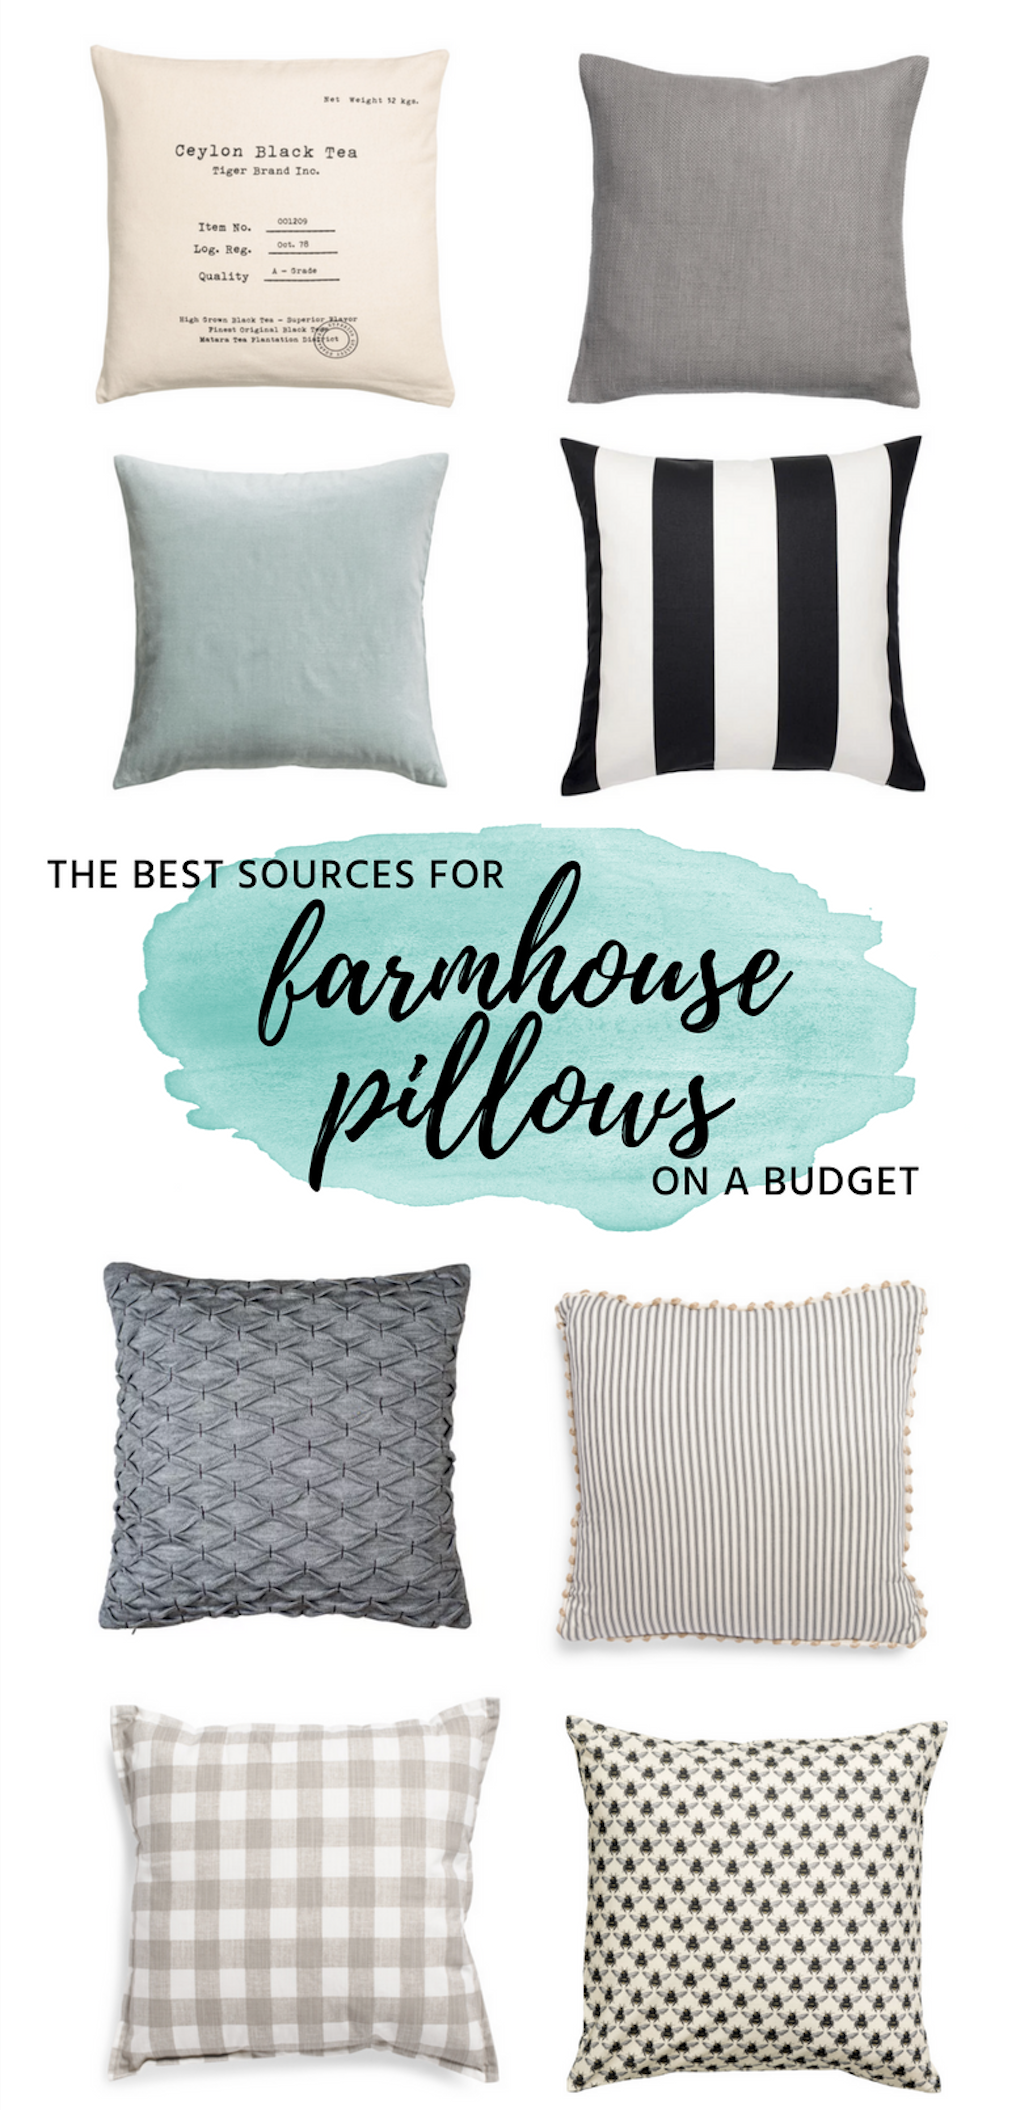 The Best Places To Find Beautiful Throw Pillows On A Budget Beautiful Throw Pillows Pillows Farmhouse Pillows